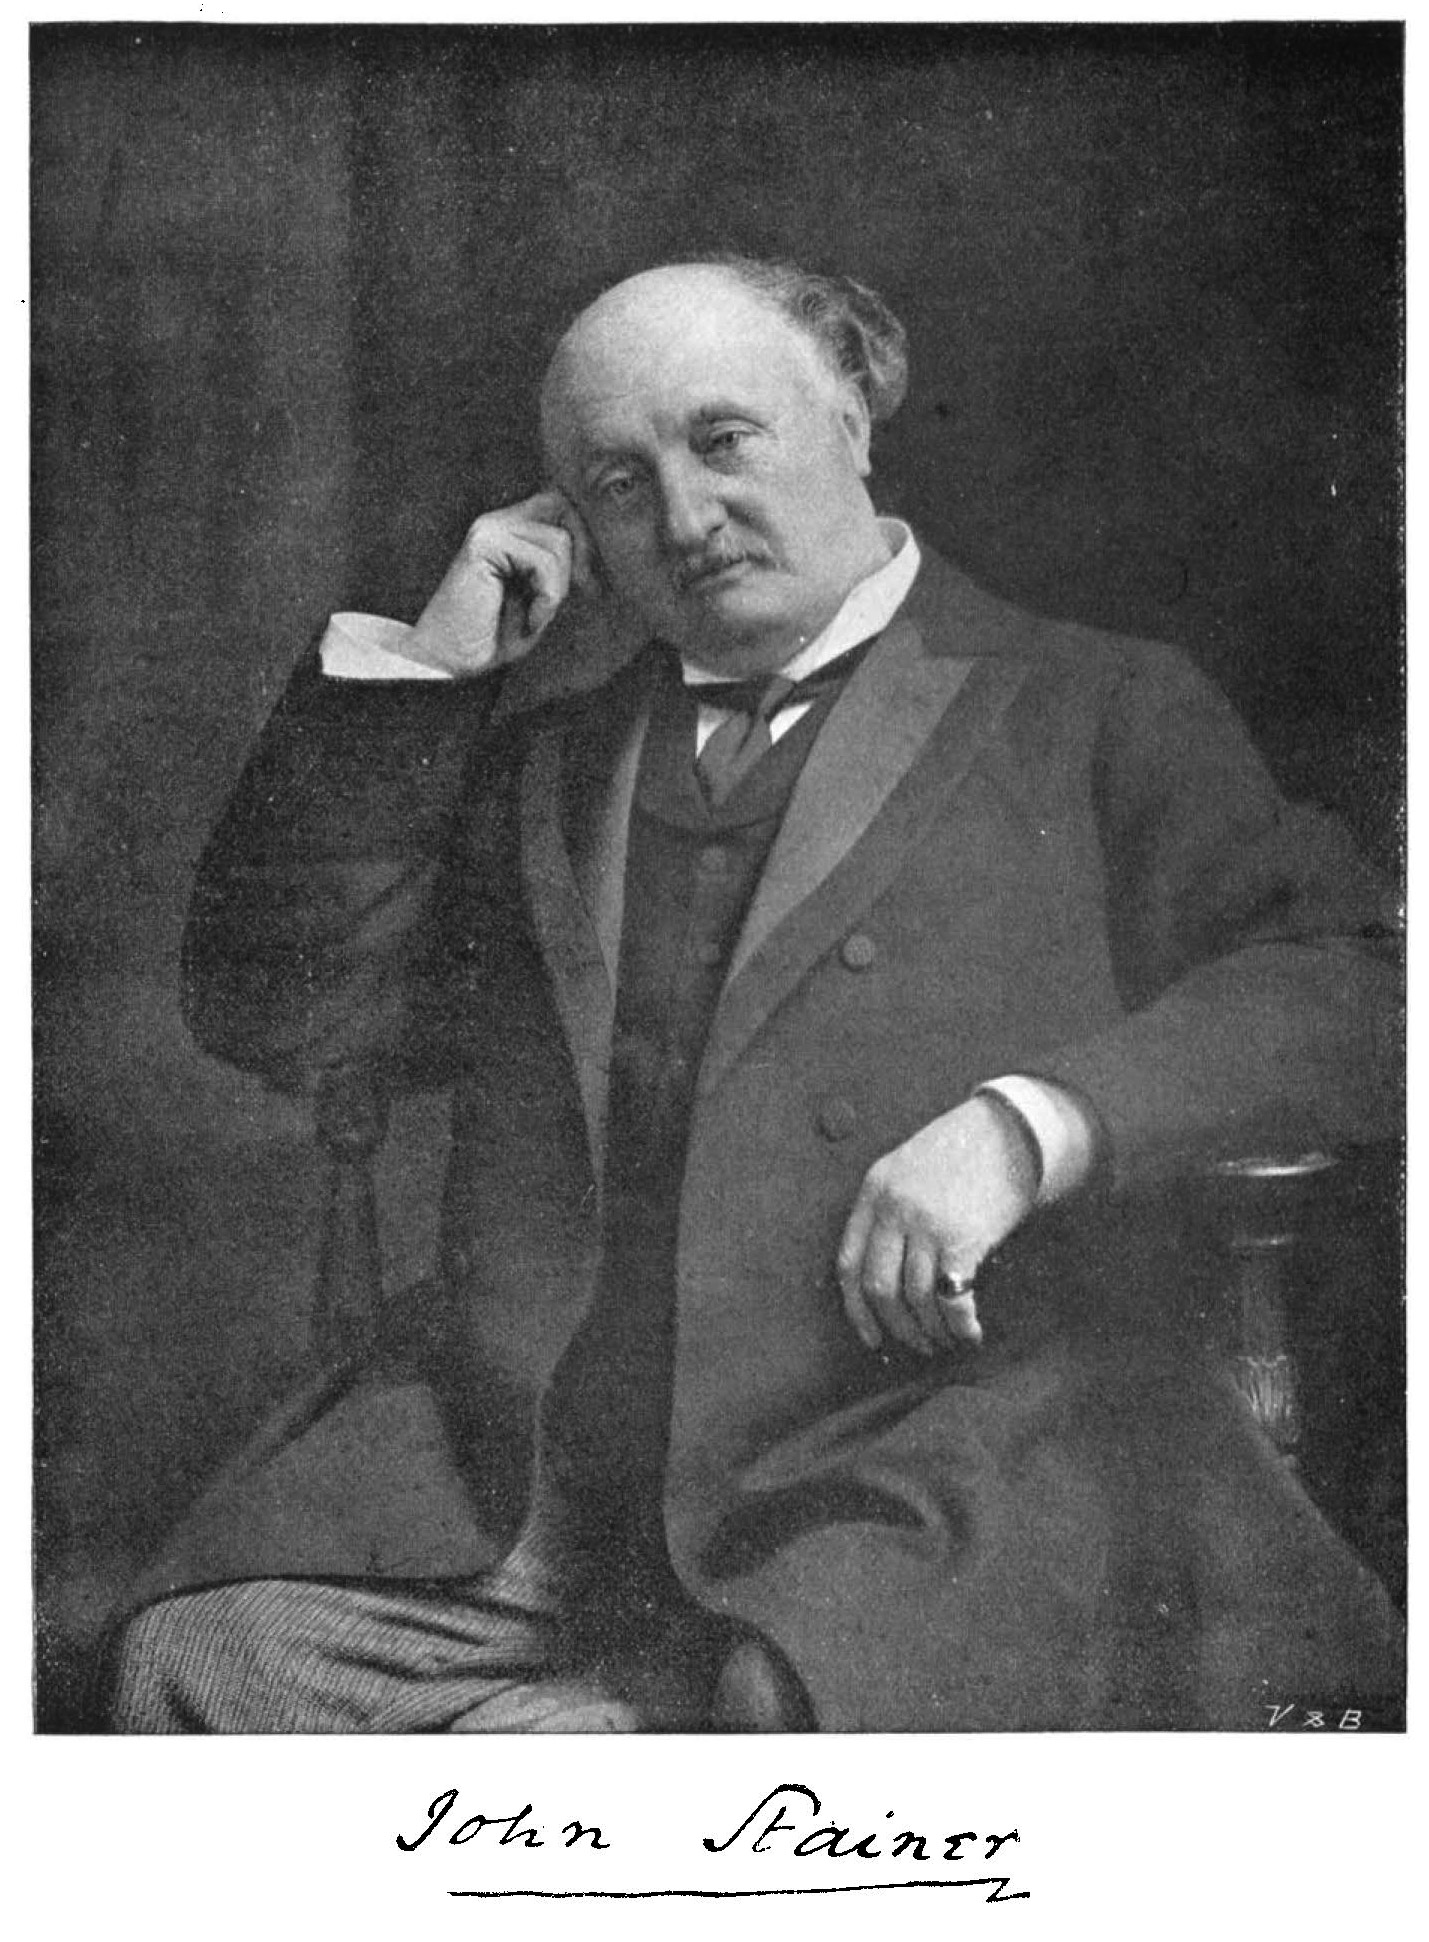 John Stainer , in  The Musical Times  (1 May 1901), p. 298.